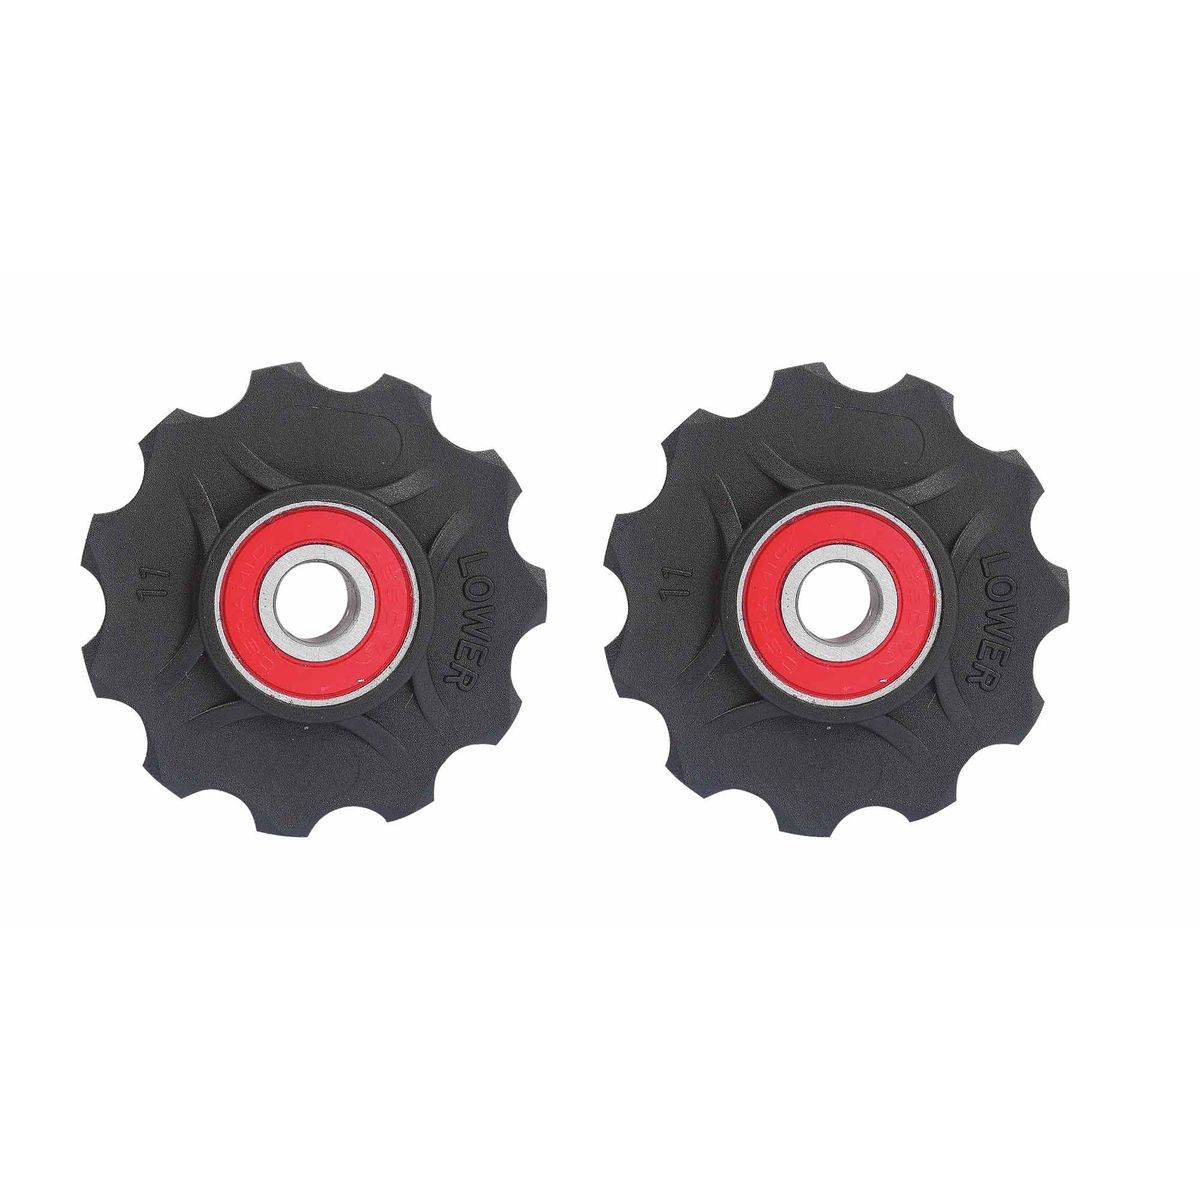 Big Wheels KC11 derailleur wheels